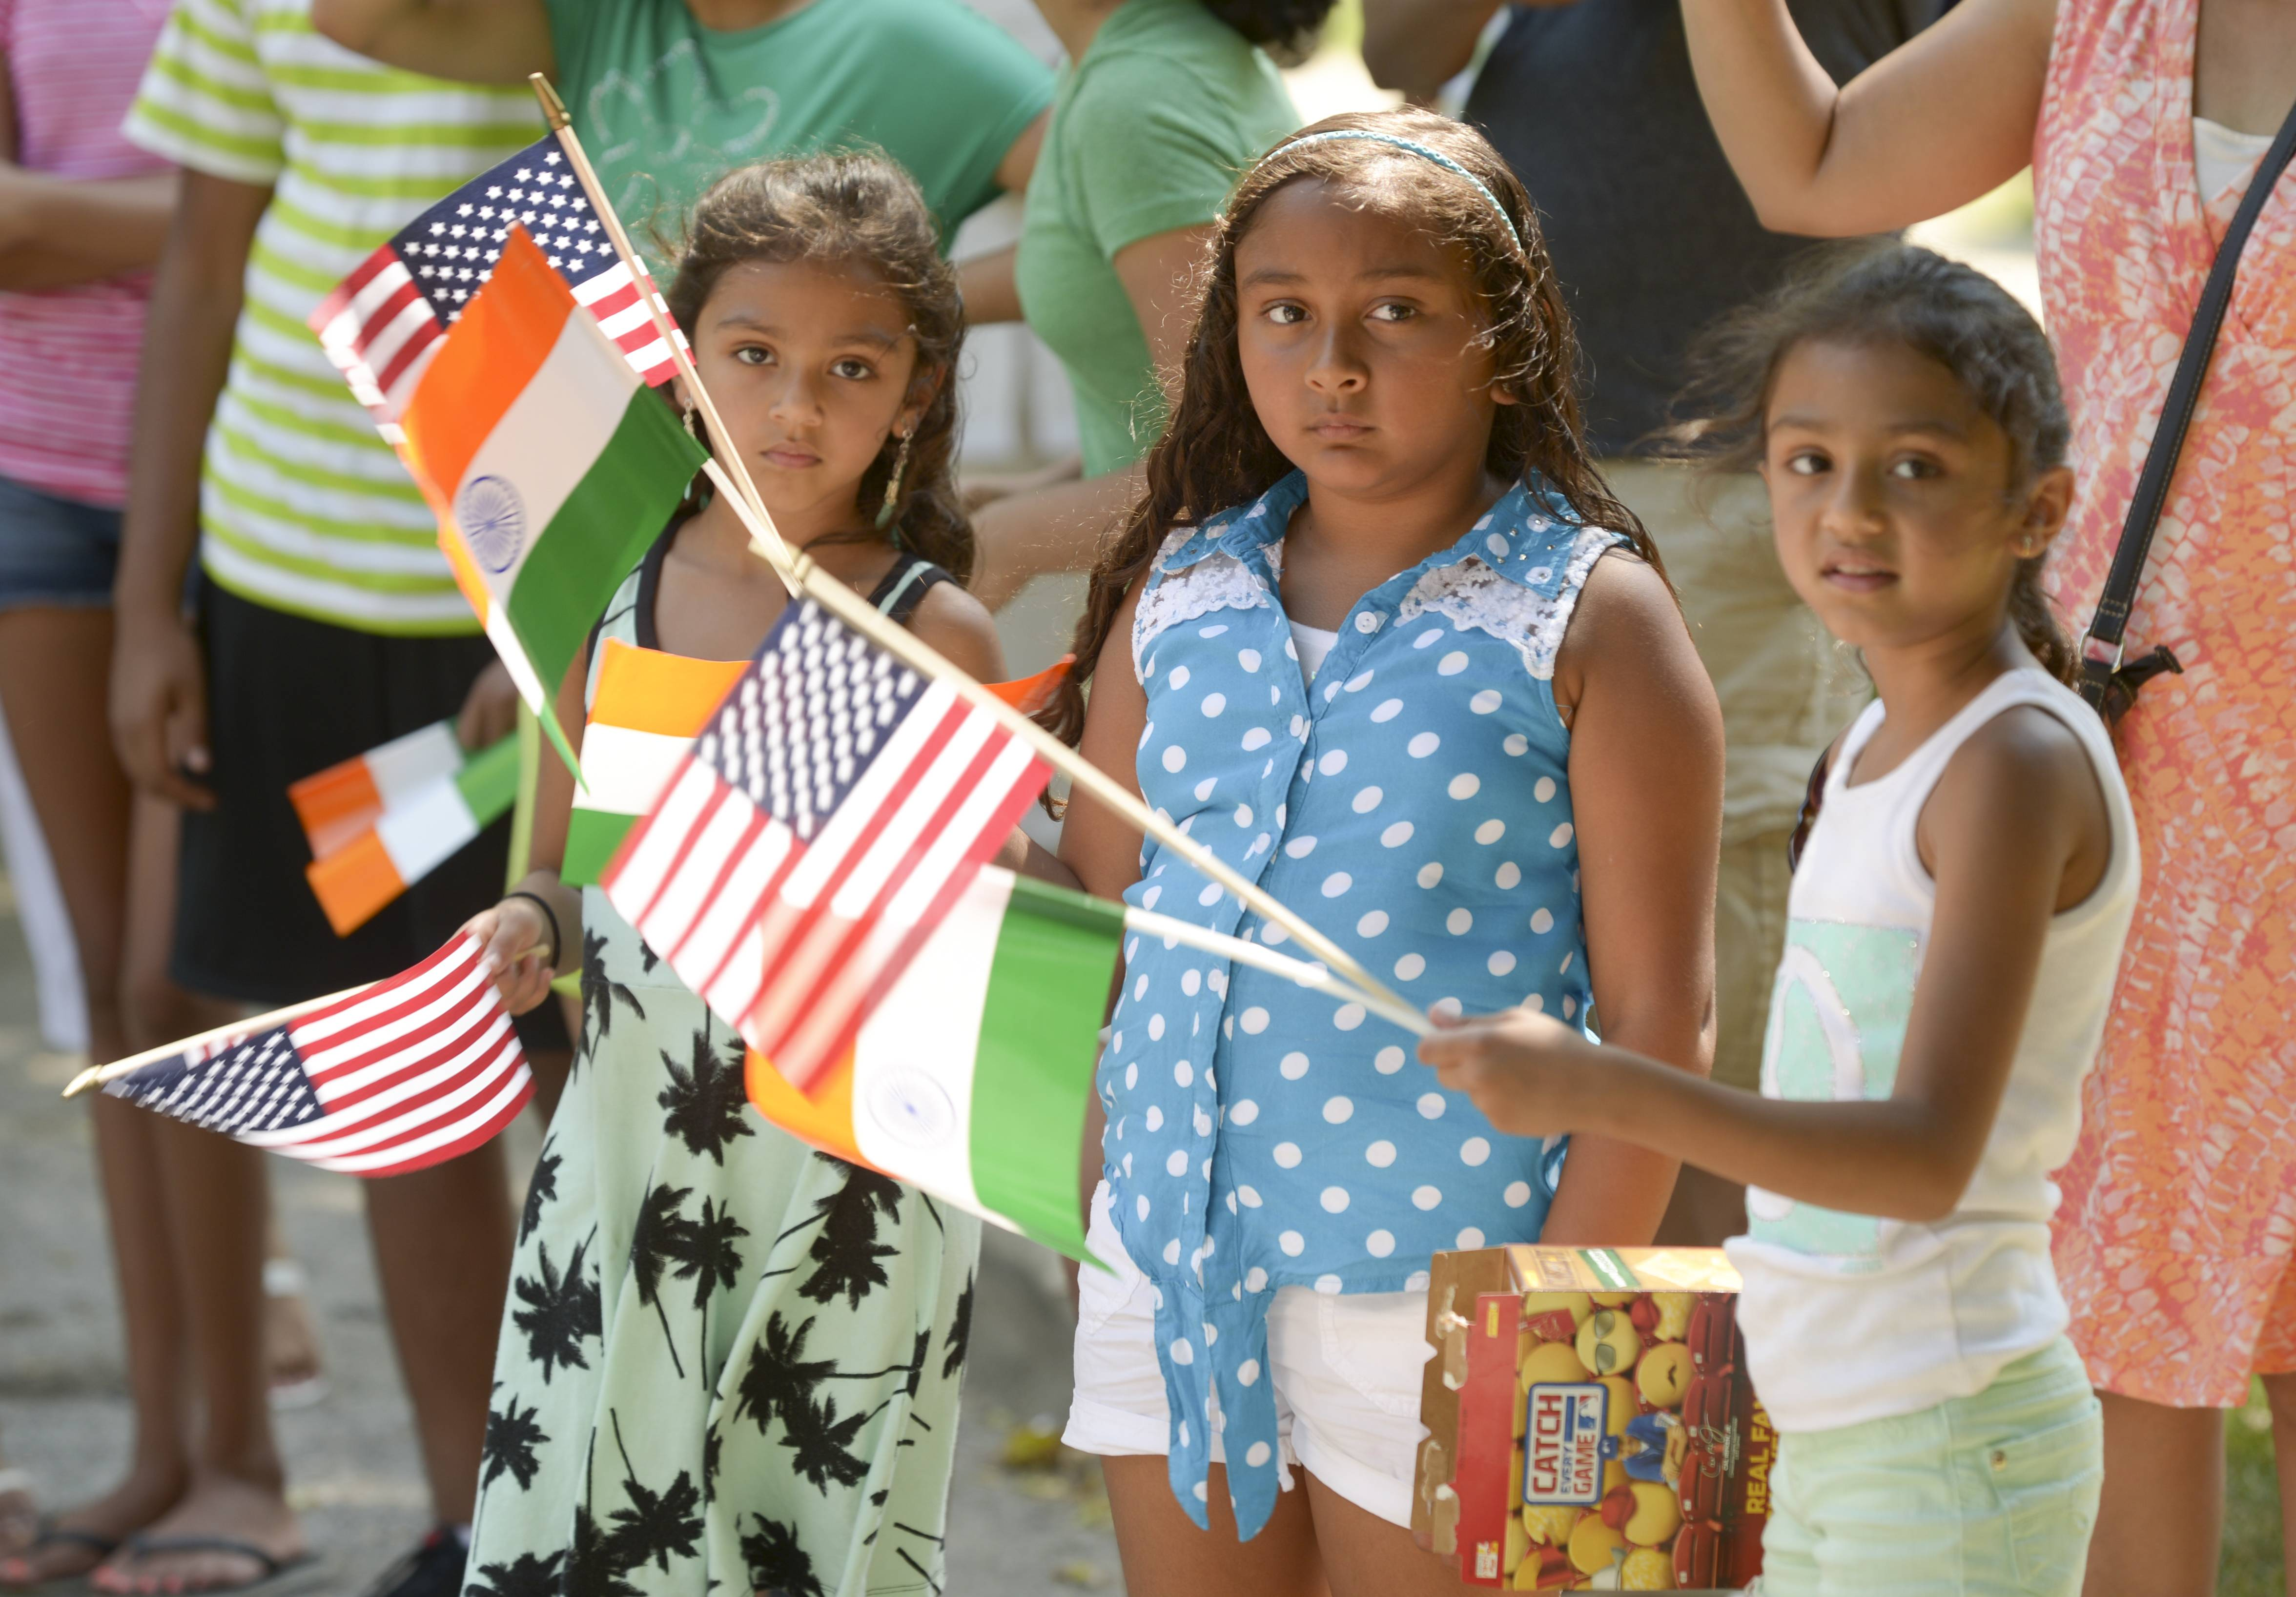 Cousins Jasmine, Siy and Jessica Shah of Naperville wave American and Indian flags Sunday while watching the Naperville Indian Community Outreach's first India Day Parade. The event marked India's independence day.